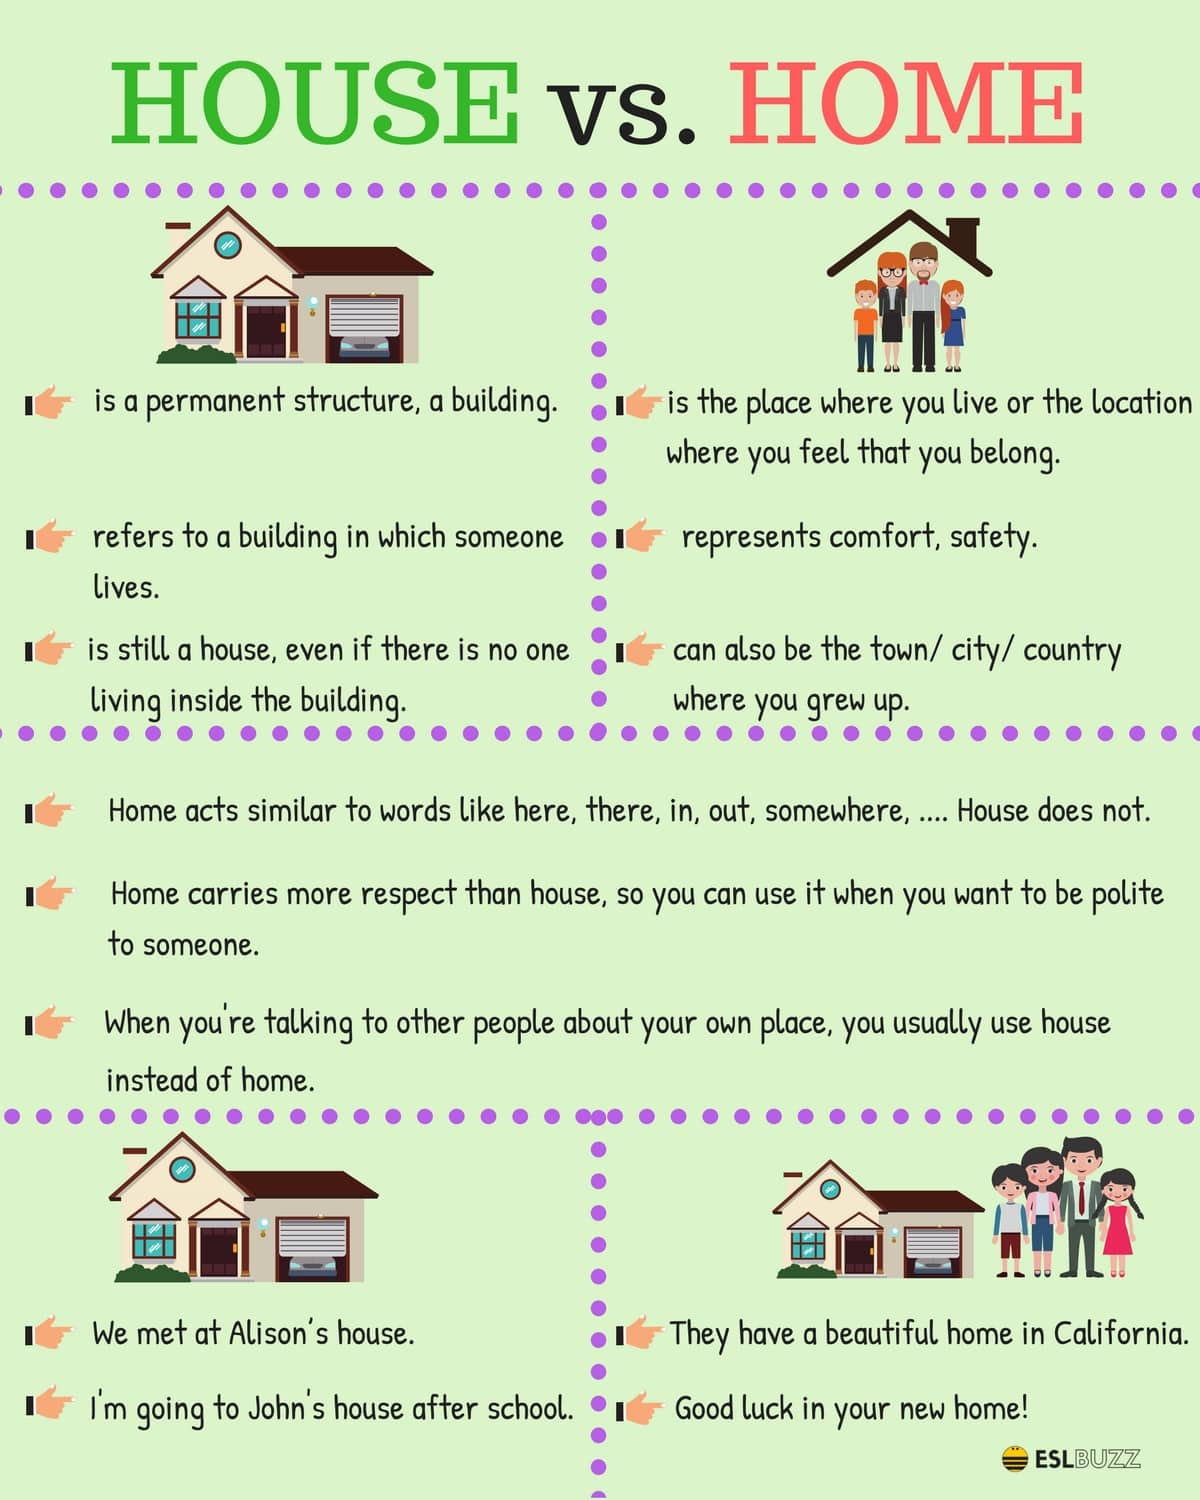 Difference between AHouse and AHome